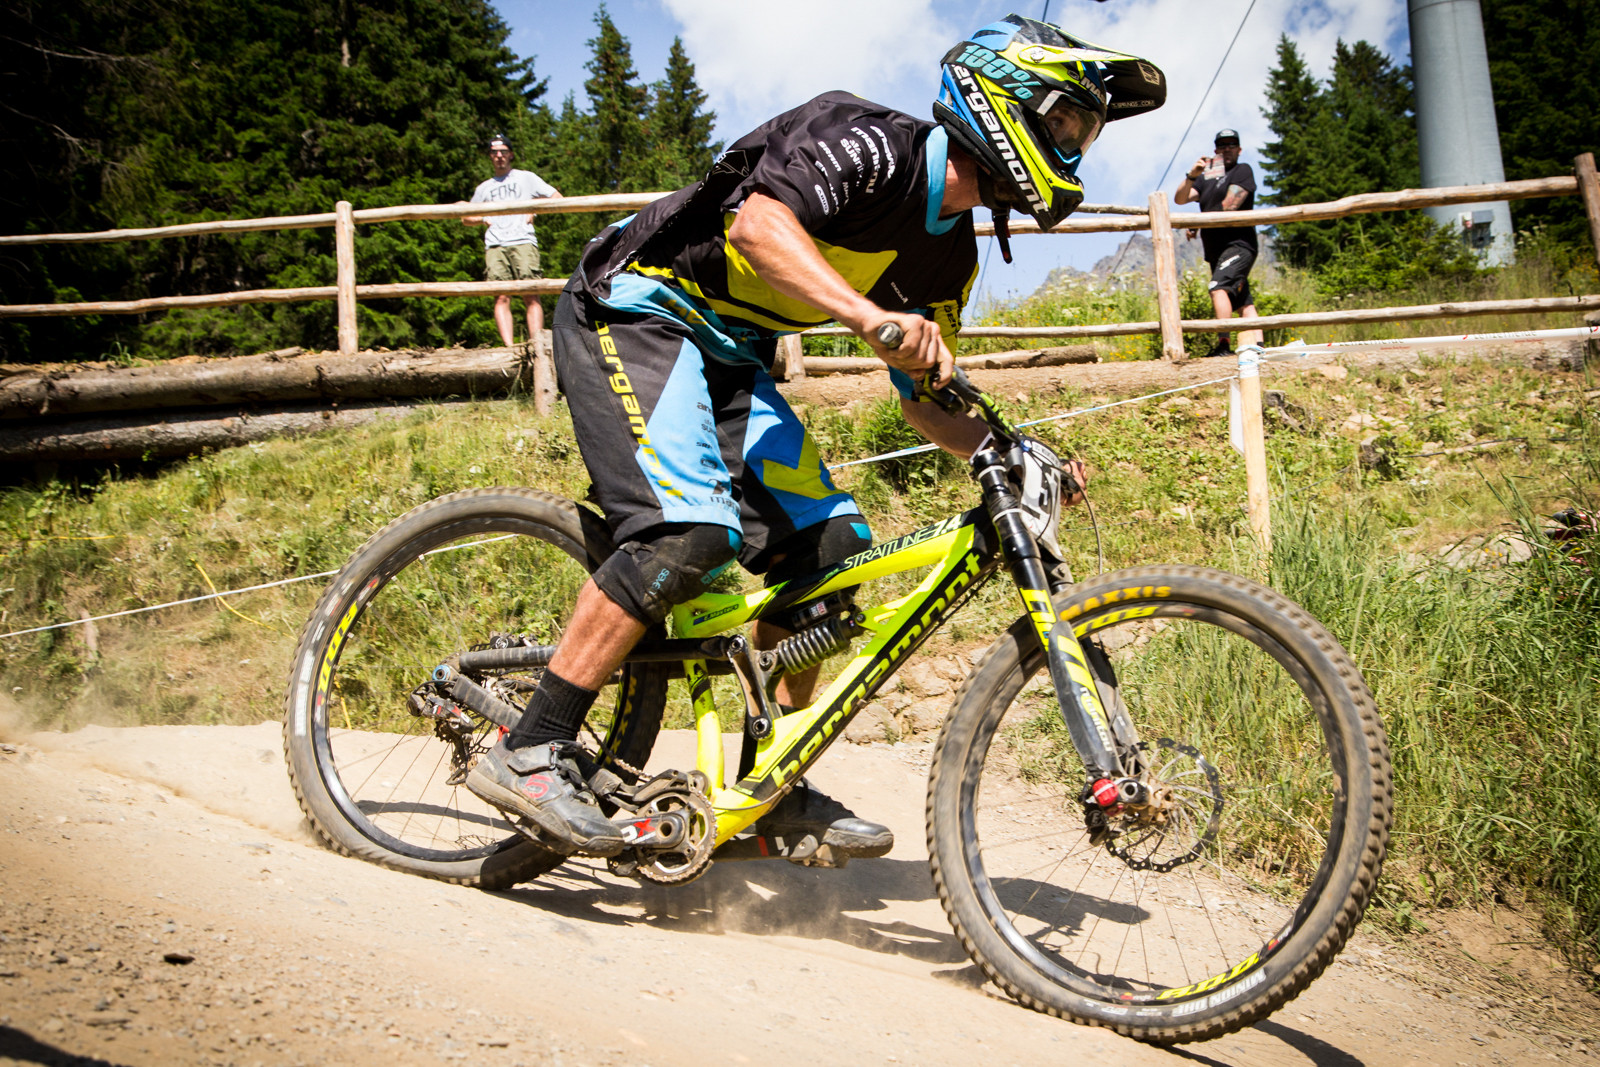 Eddie Masters, G-Out Project, Lenzerheide World Cup - G-Out Project - Lenzerheide World Cup - Mountain Biking Pictures - Vital MTB